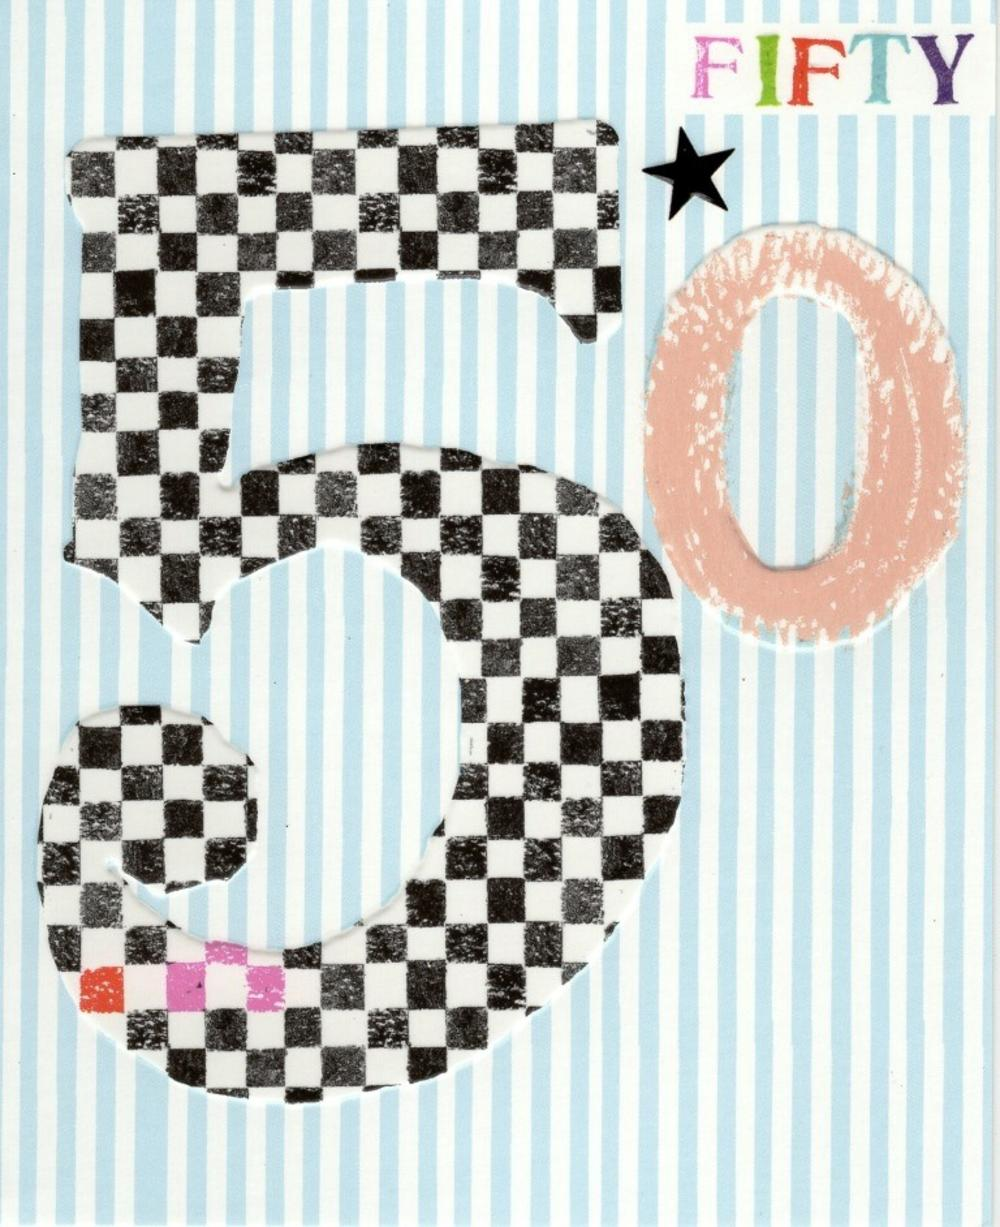 50th Birthday Paper Salad Greeting Card